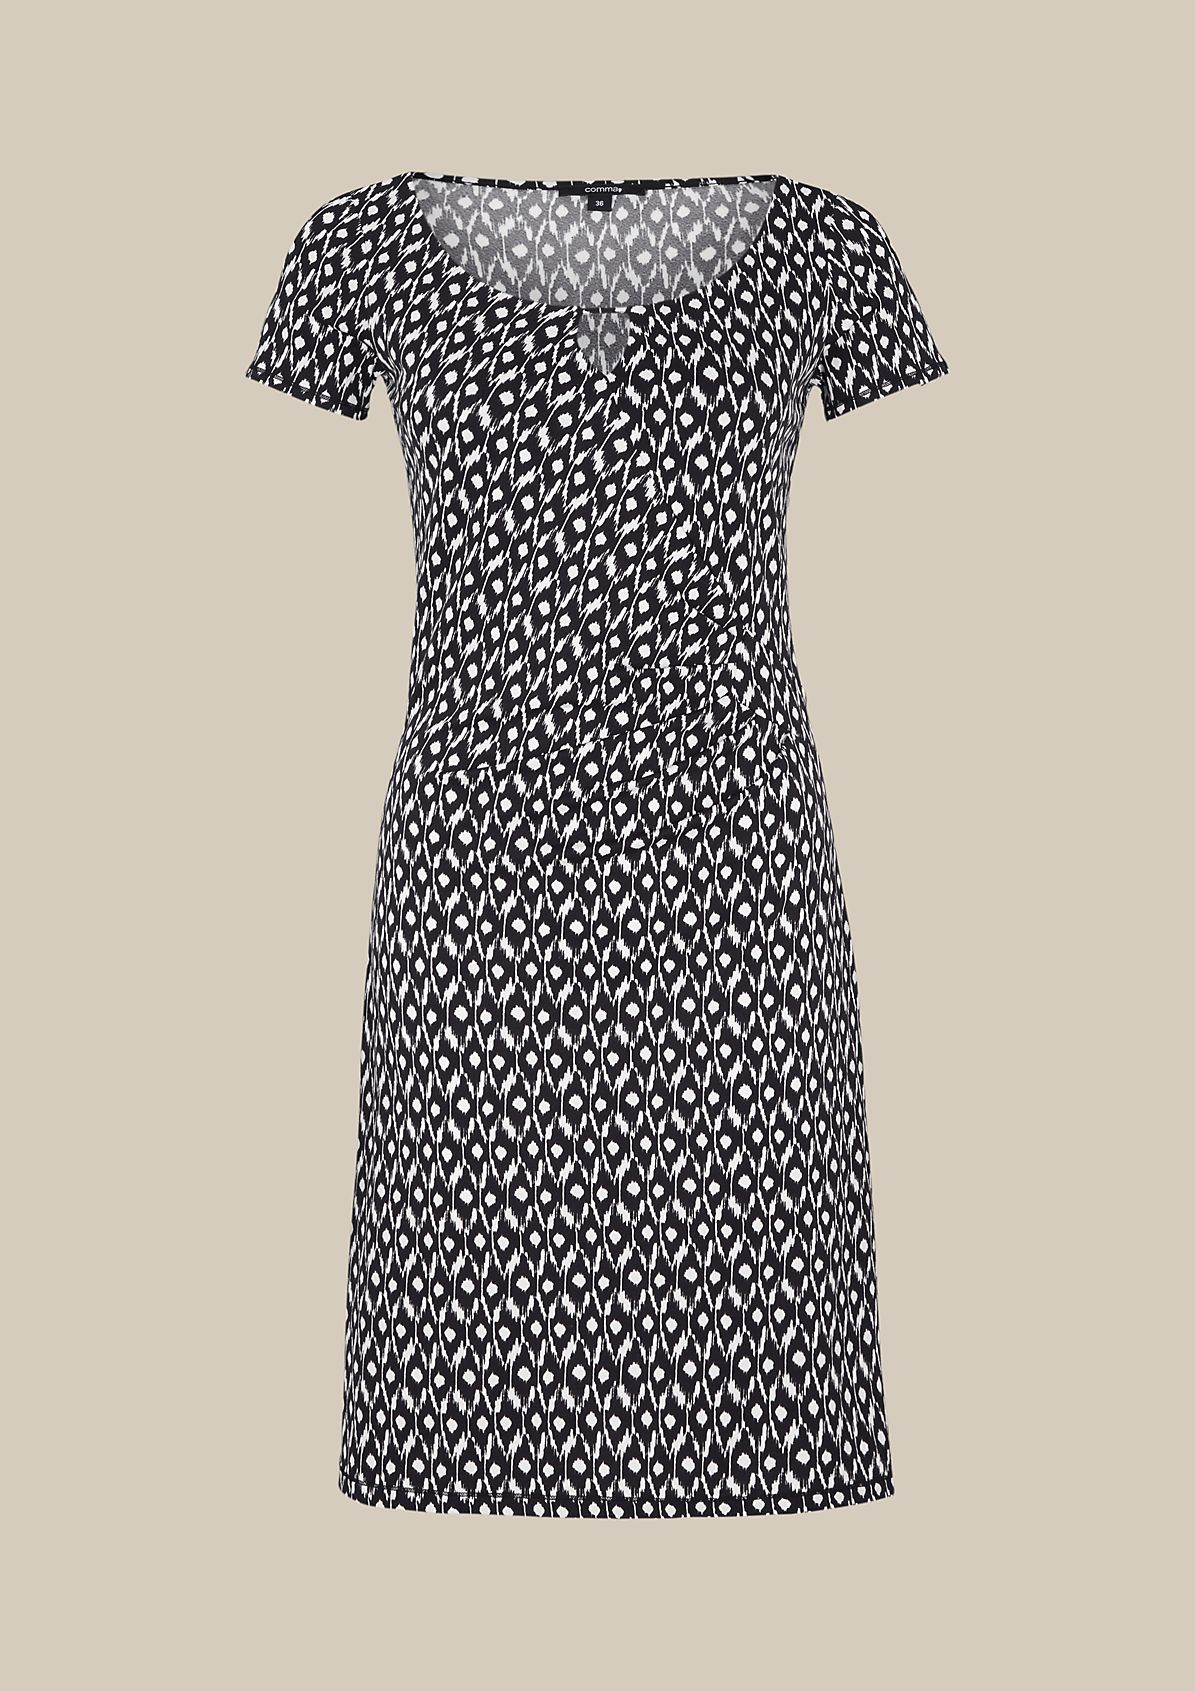 Lightweight jersey dress with a decorative all-over print from s.Oliver